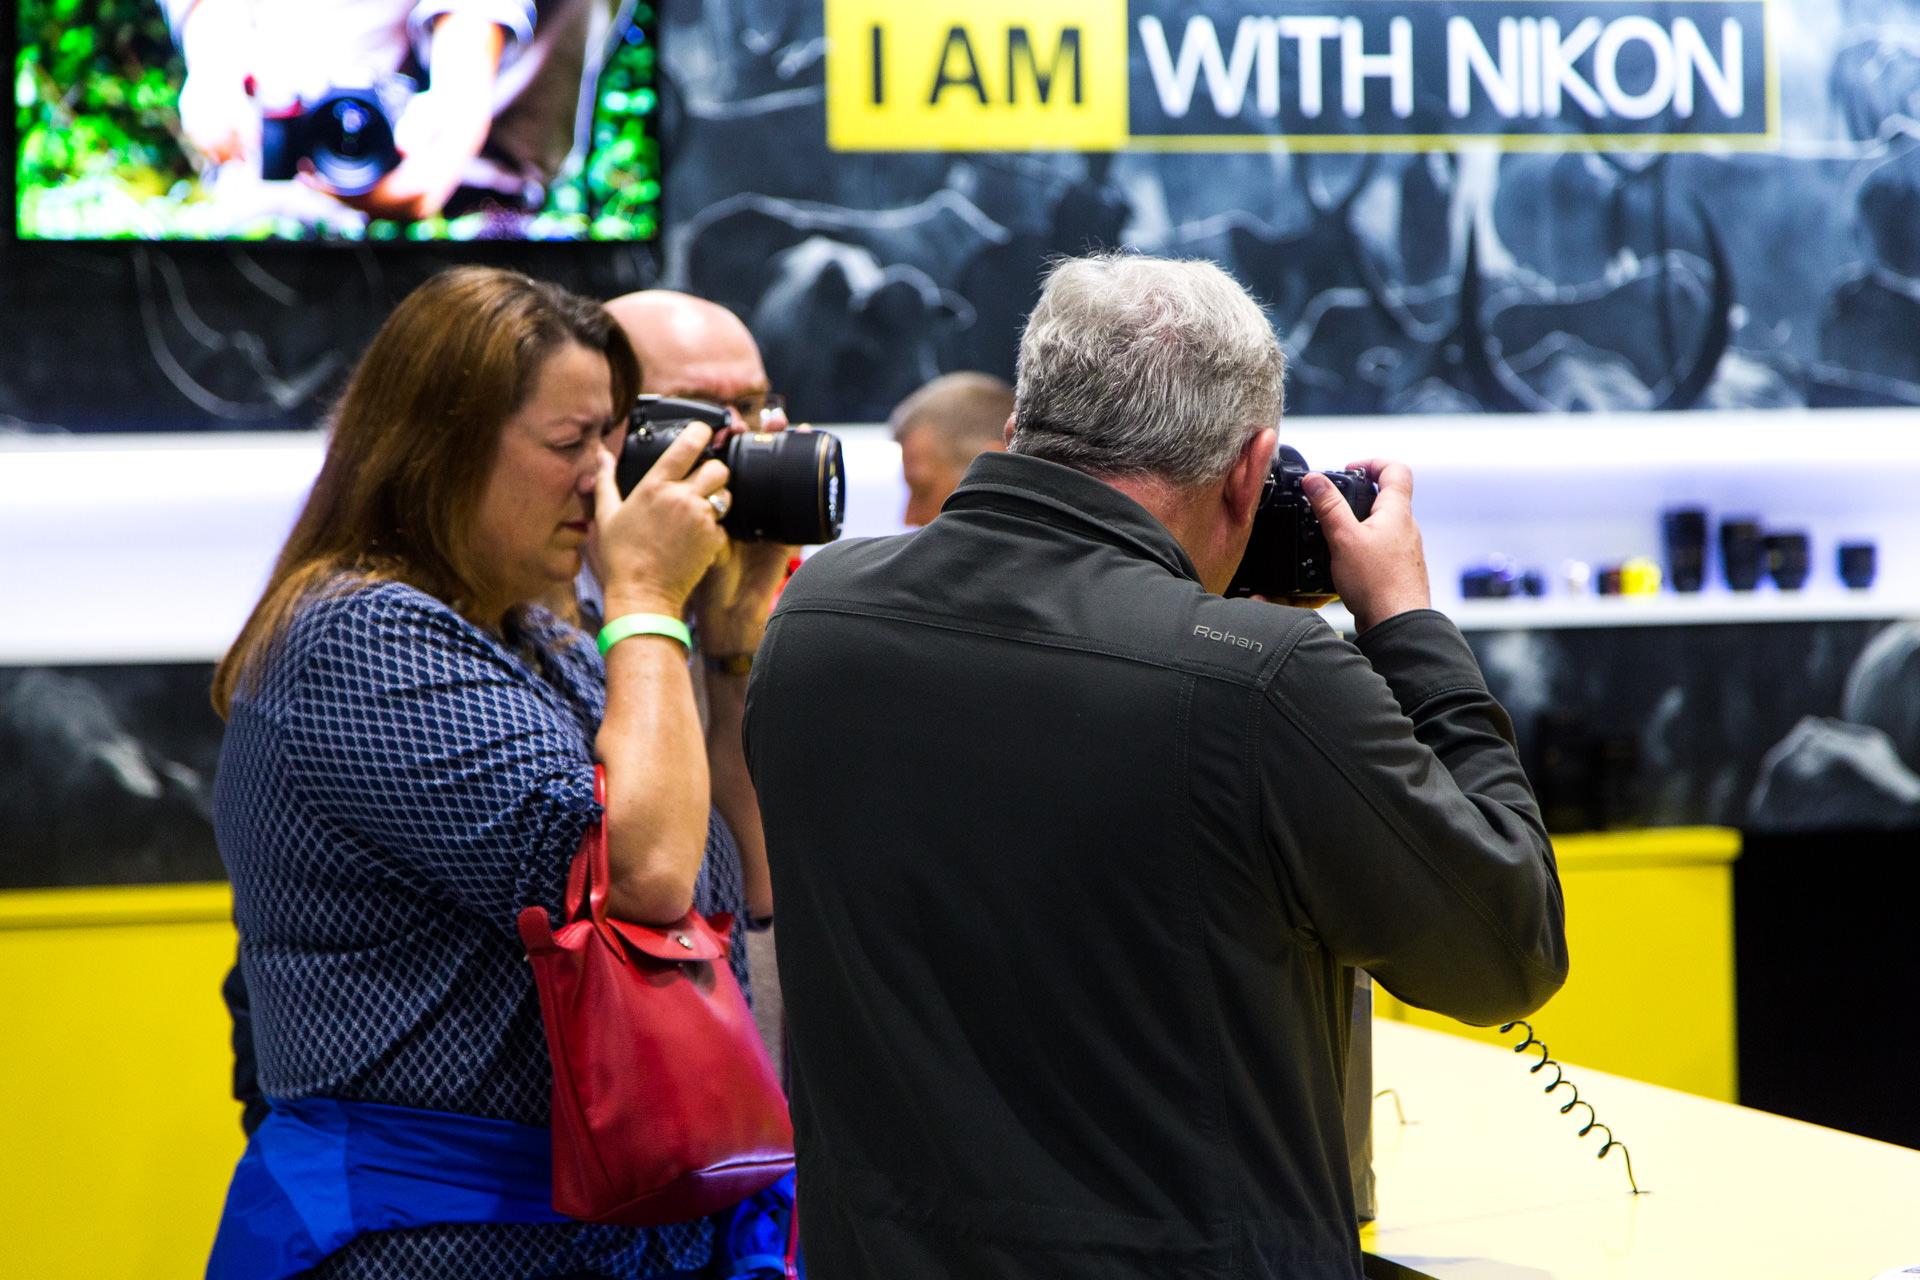 Visitors trying out some of Nikon's cameras and lenses.